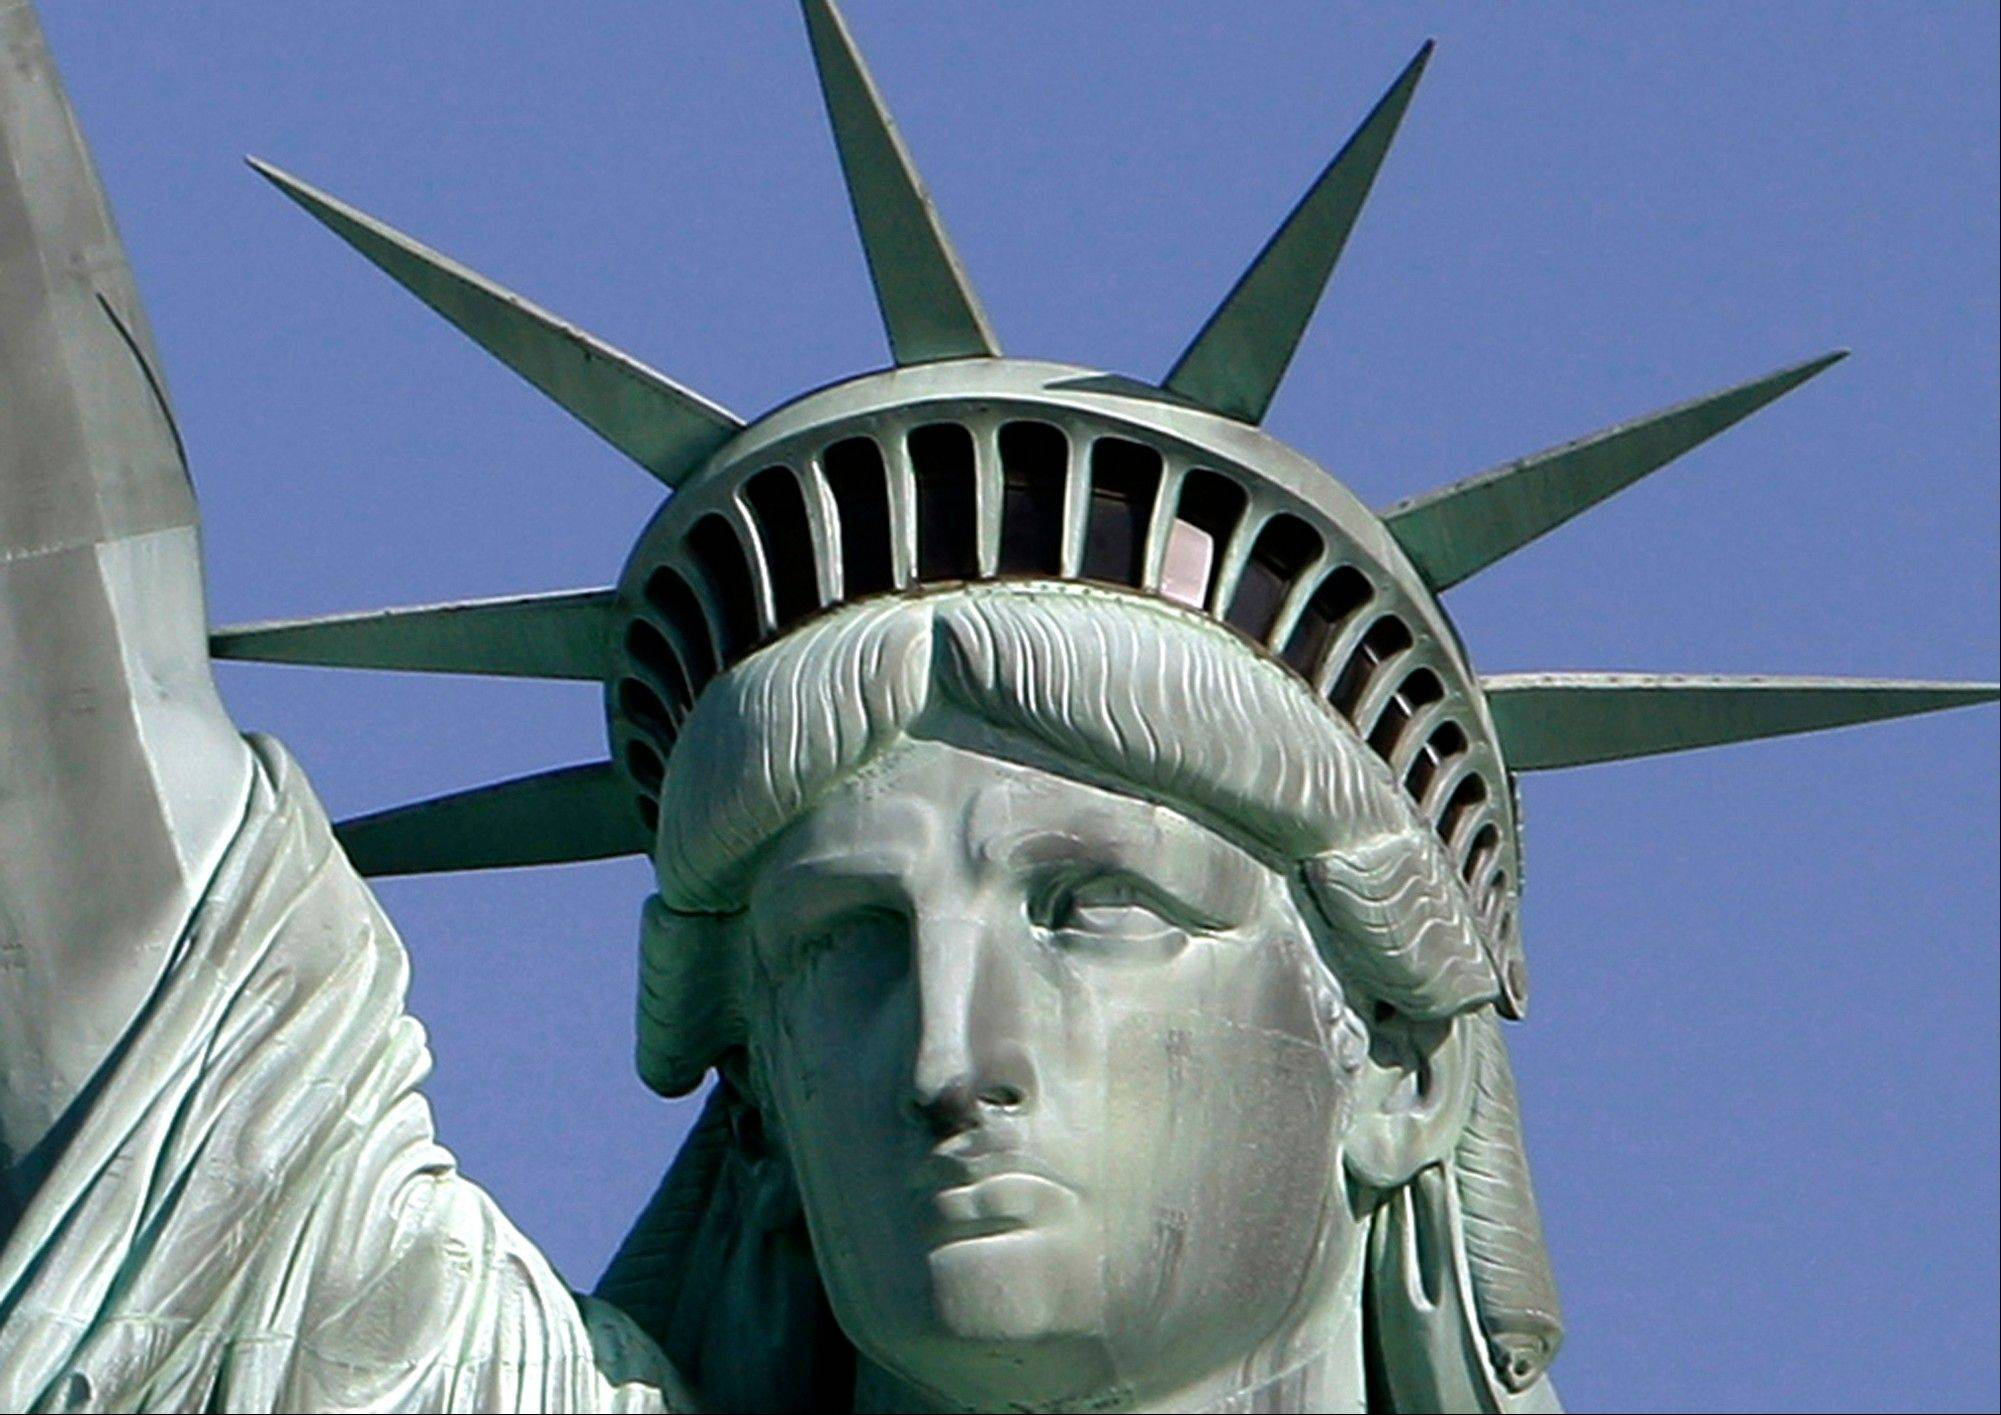 On Sunday, the Statue of Liberty will reopen to the public on the U.S. landmark�s 126th anniversary. The statue has been closed since last October for renovation to its interior, although the public has been allowed to visit its Liberty Island grounds.